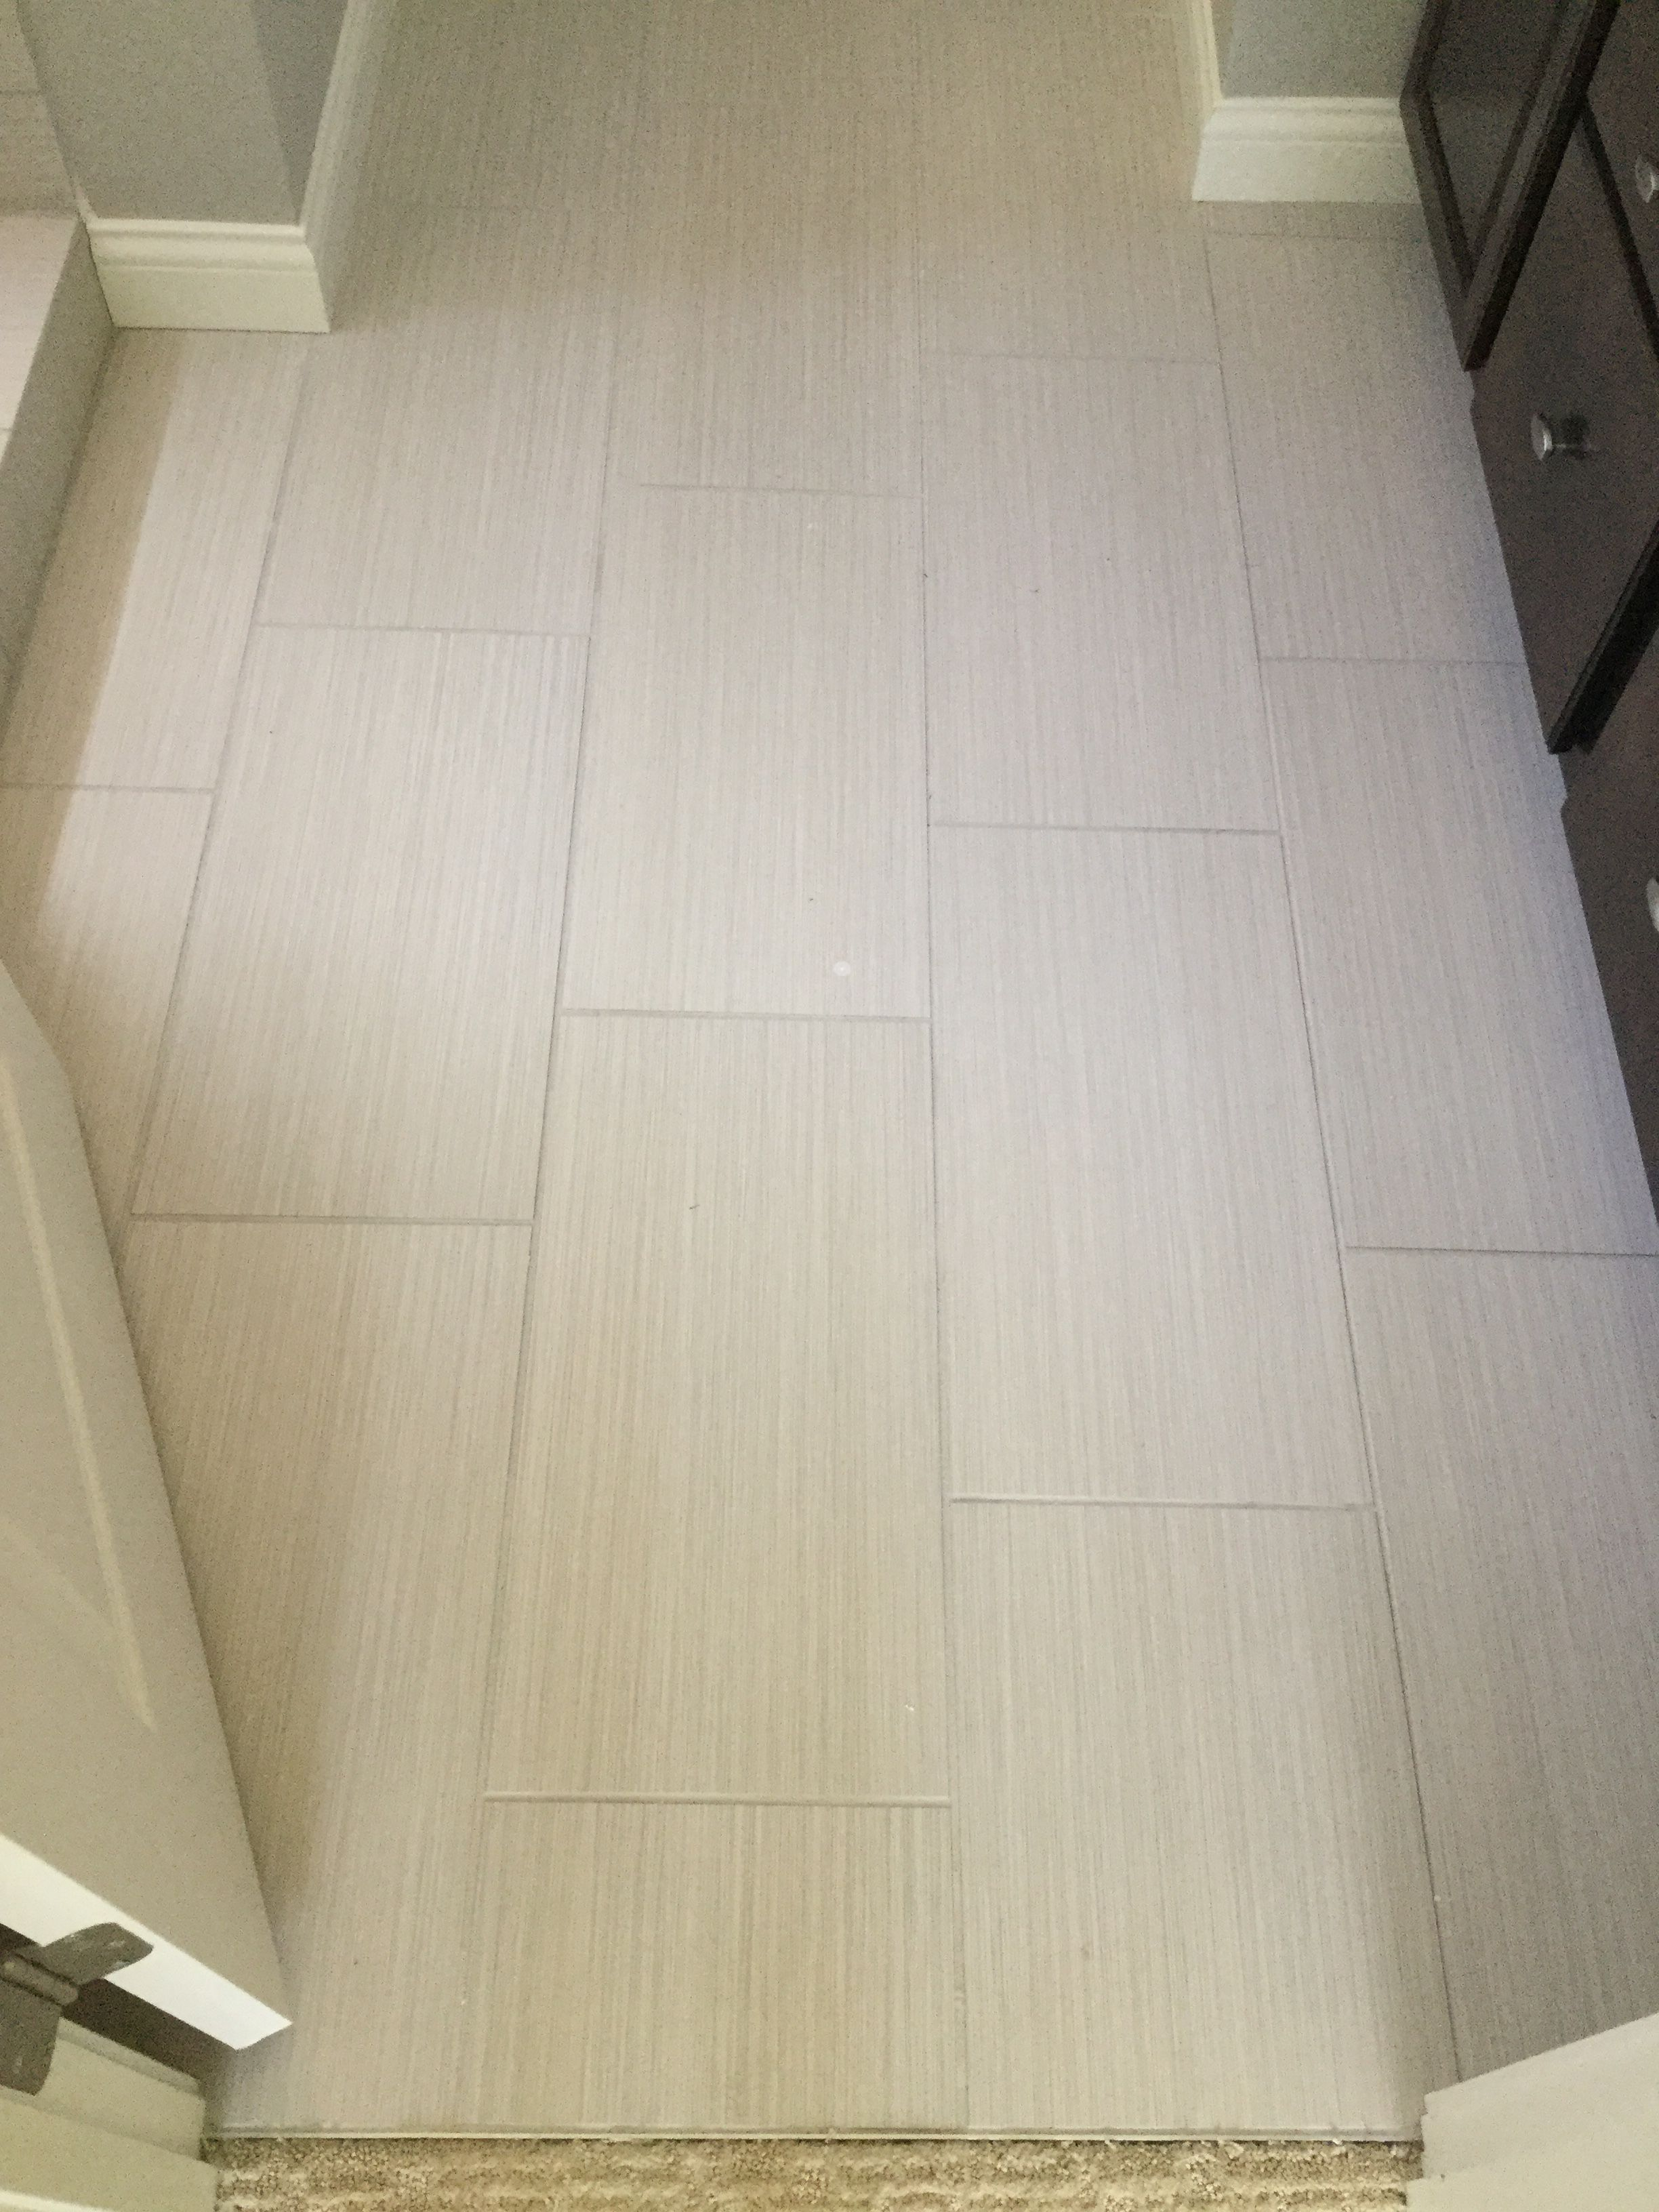 Fabrique Creme Linen 12x24 Tiles Installed Brick Joint